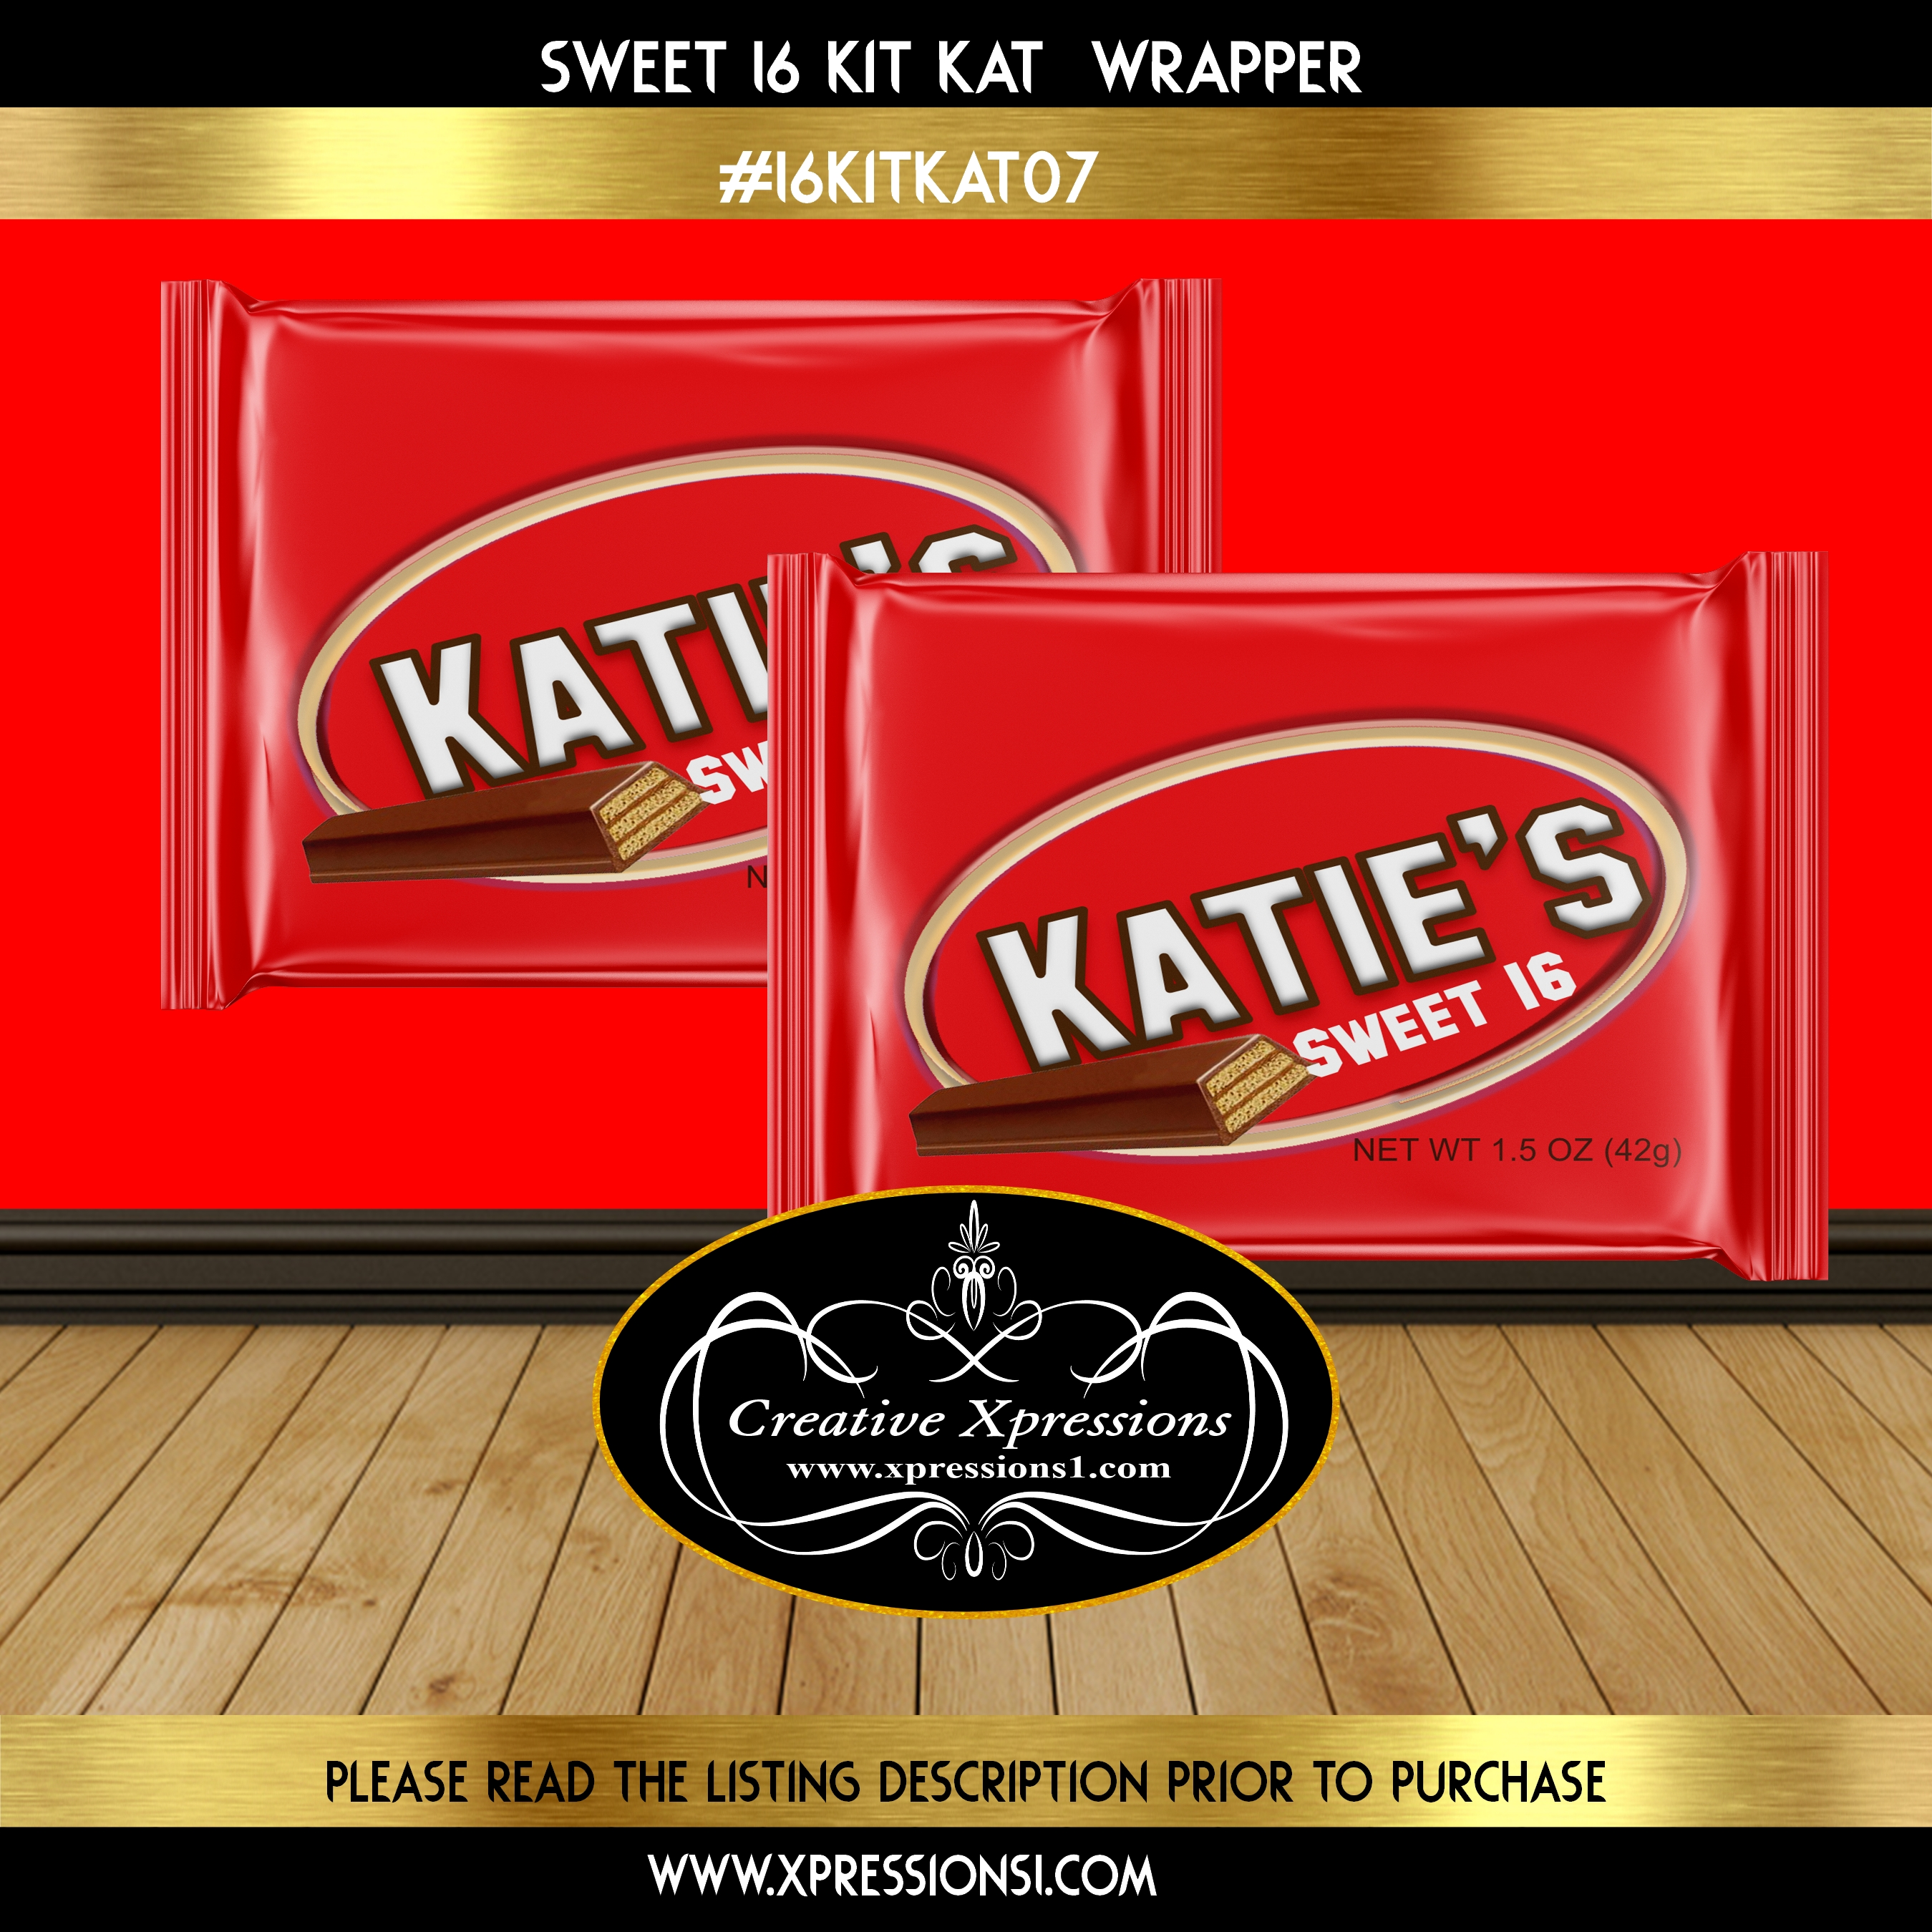 Sweet 16 Kit Kat Wrapper